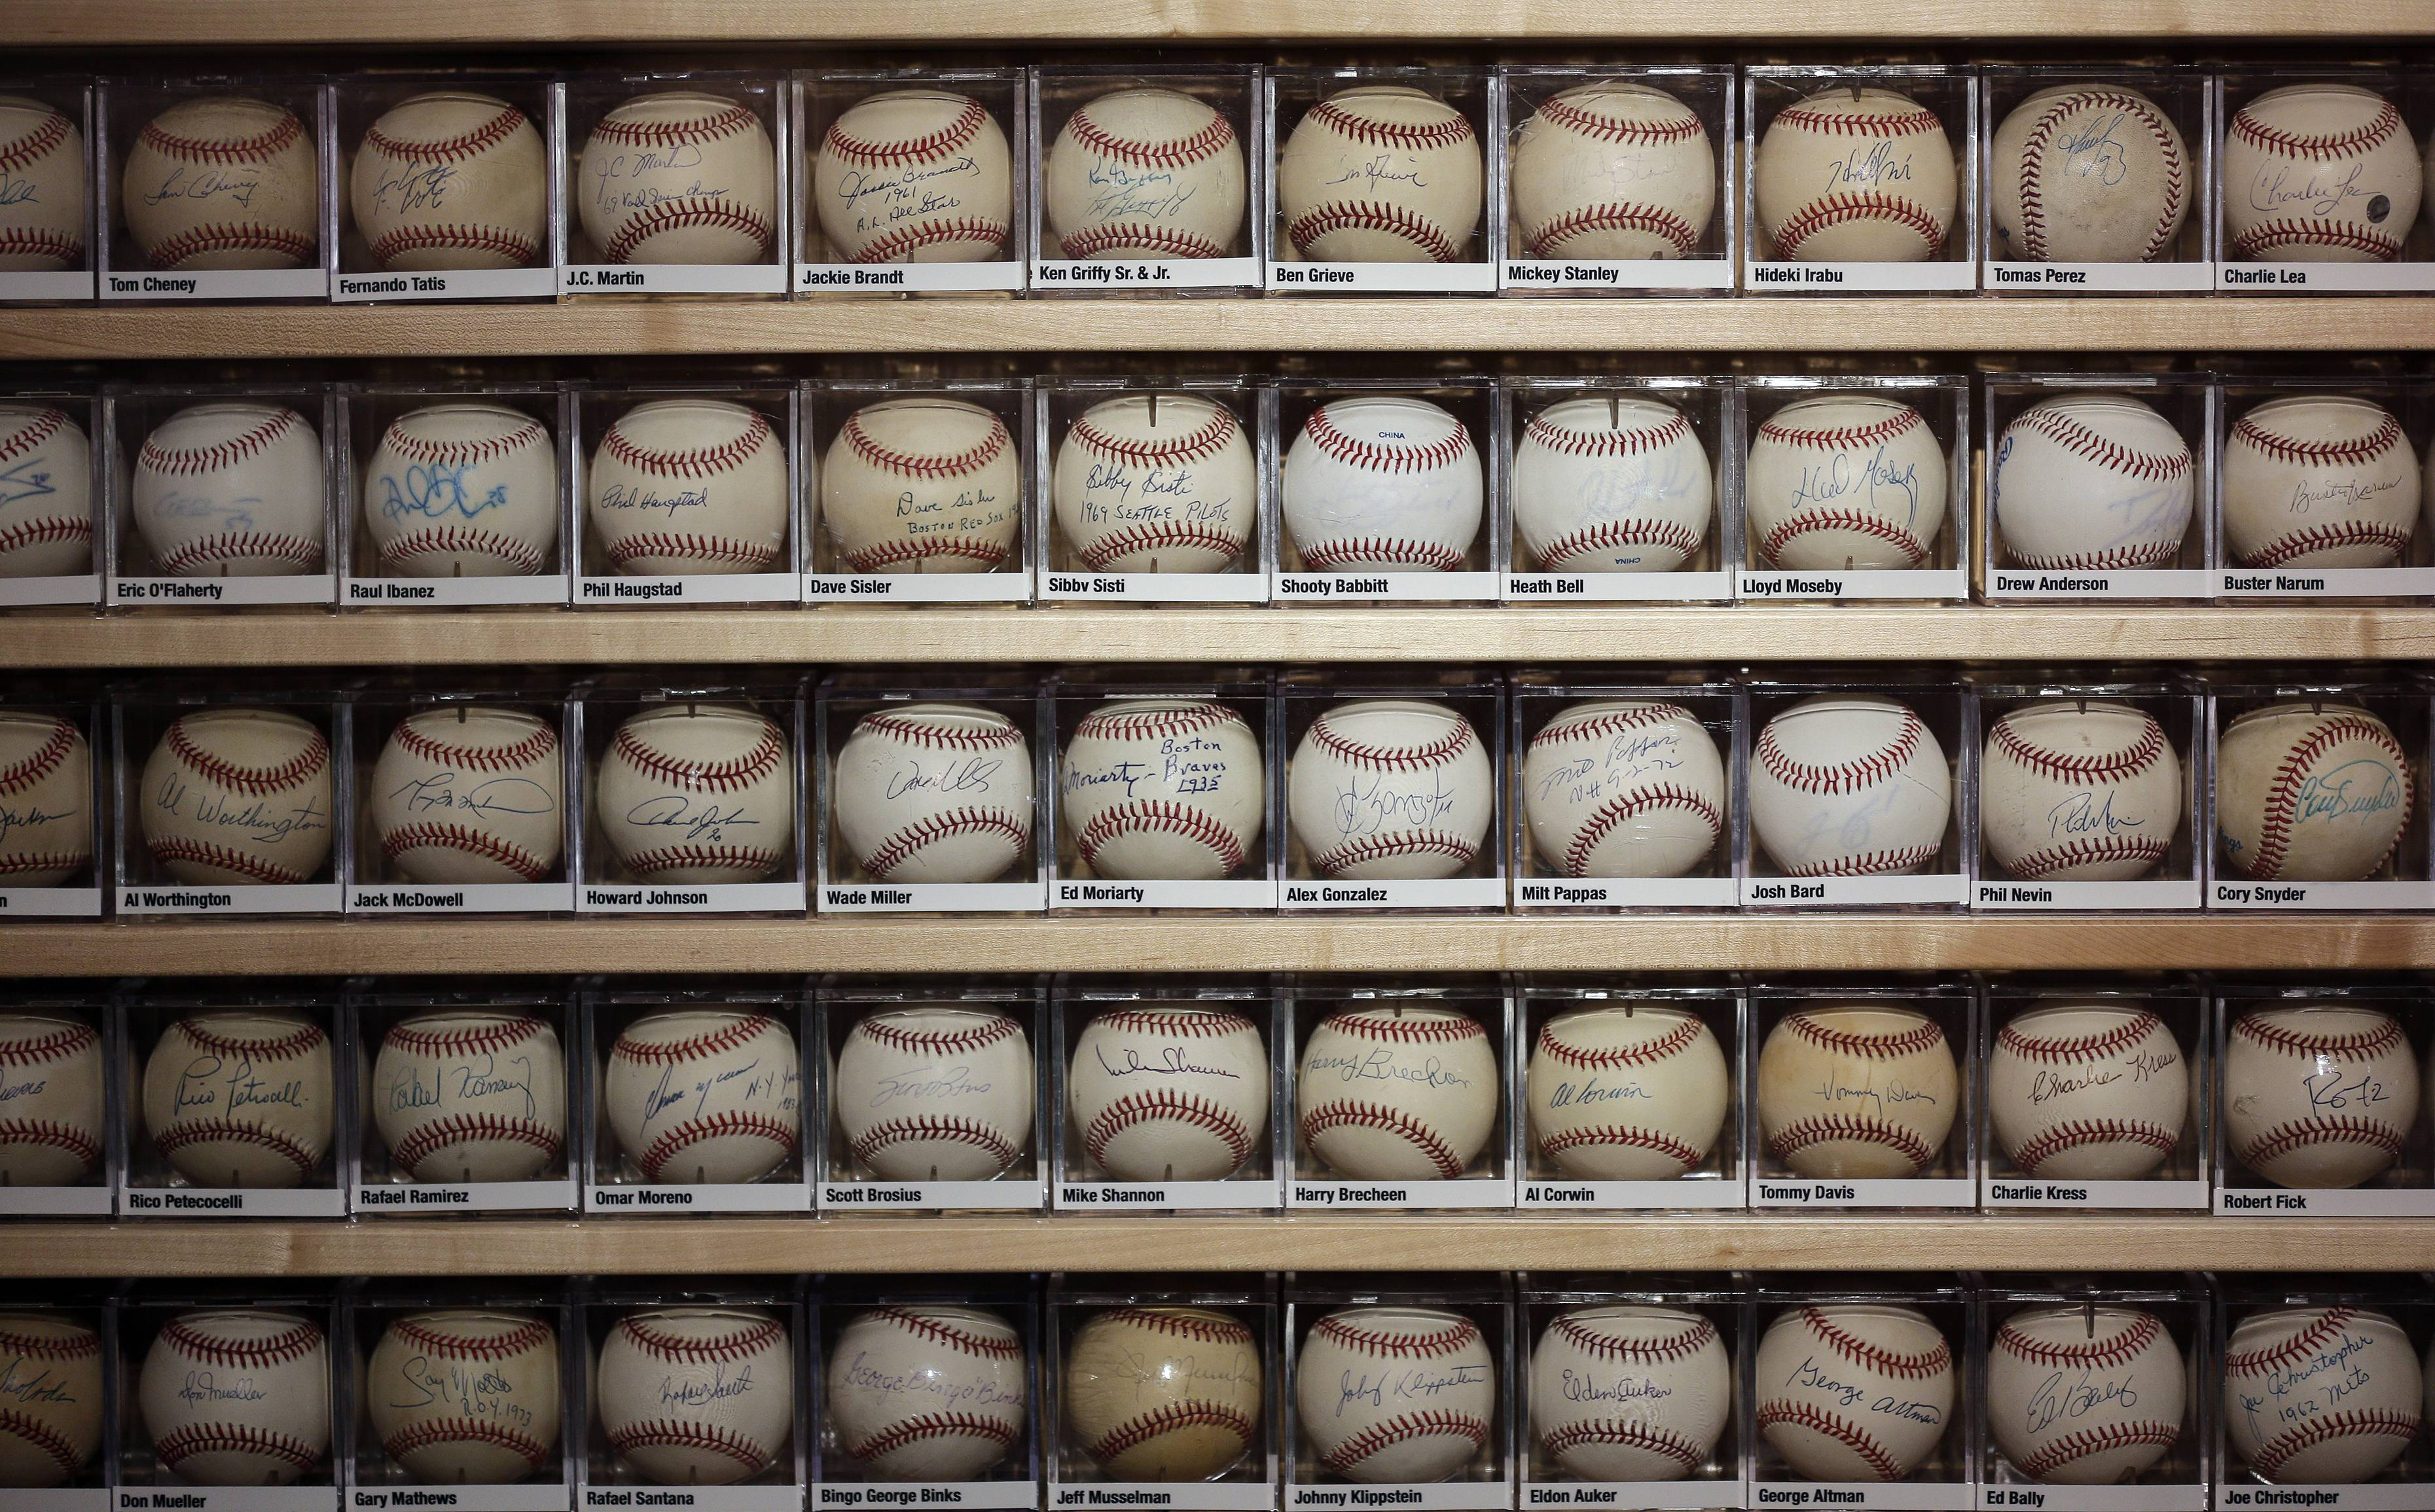 View a collection of autographed baseballs at the St. Petersburg History Museum in St. Petersburg, Fla.